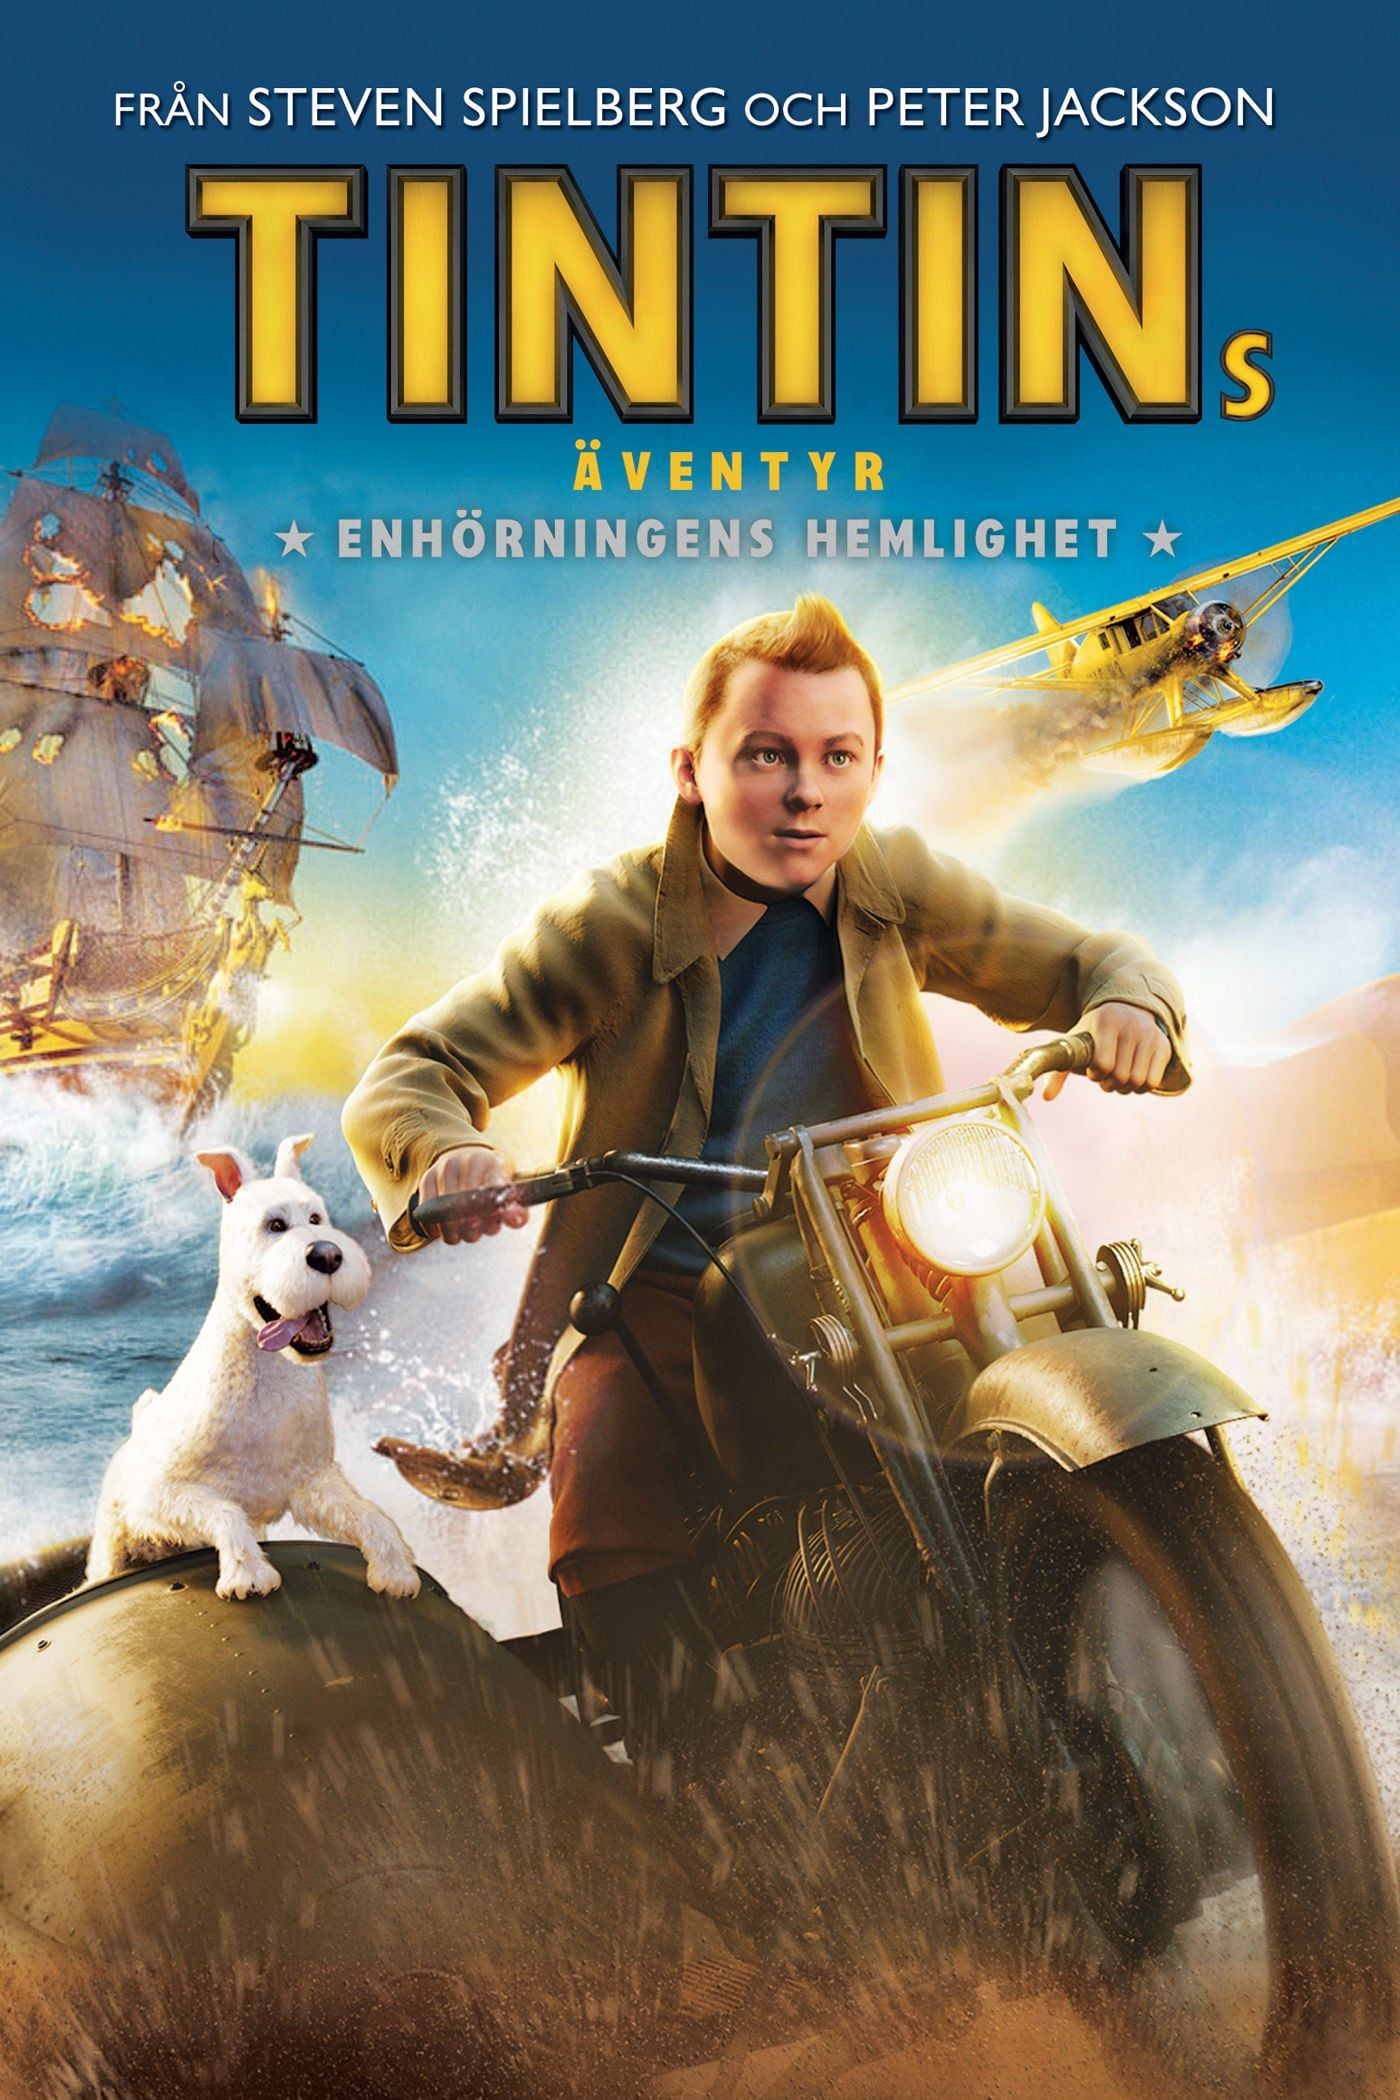 Les Aventures De Tintin Streaming : aventures, tintin, streaming, Watch, Adventures, Tintin, Streaming, Complet, Tintin,, Movie,, Adventure, Movies